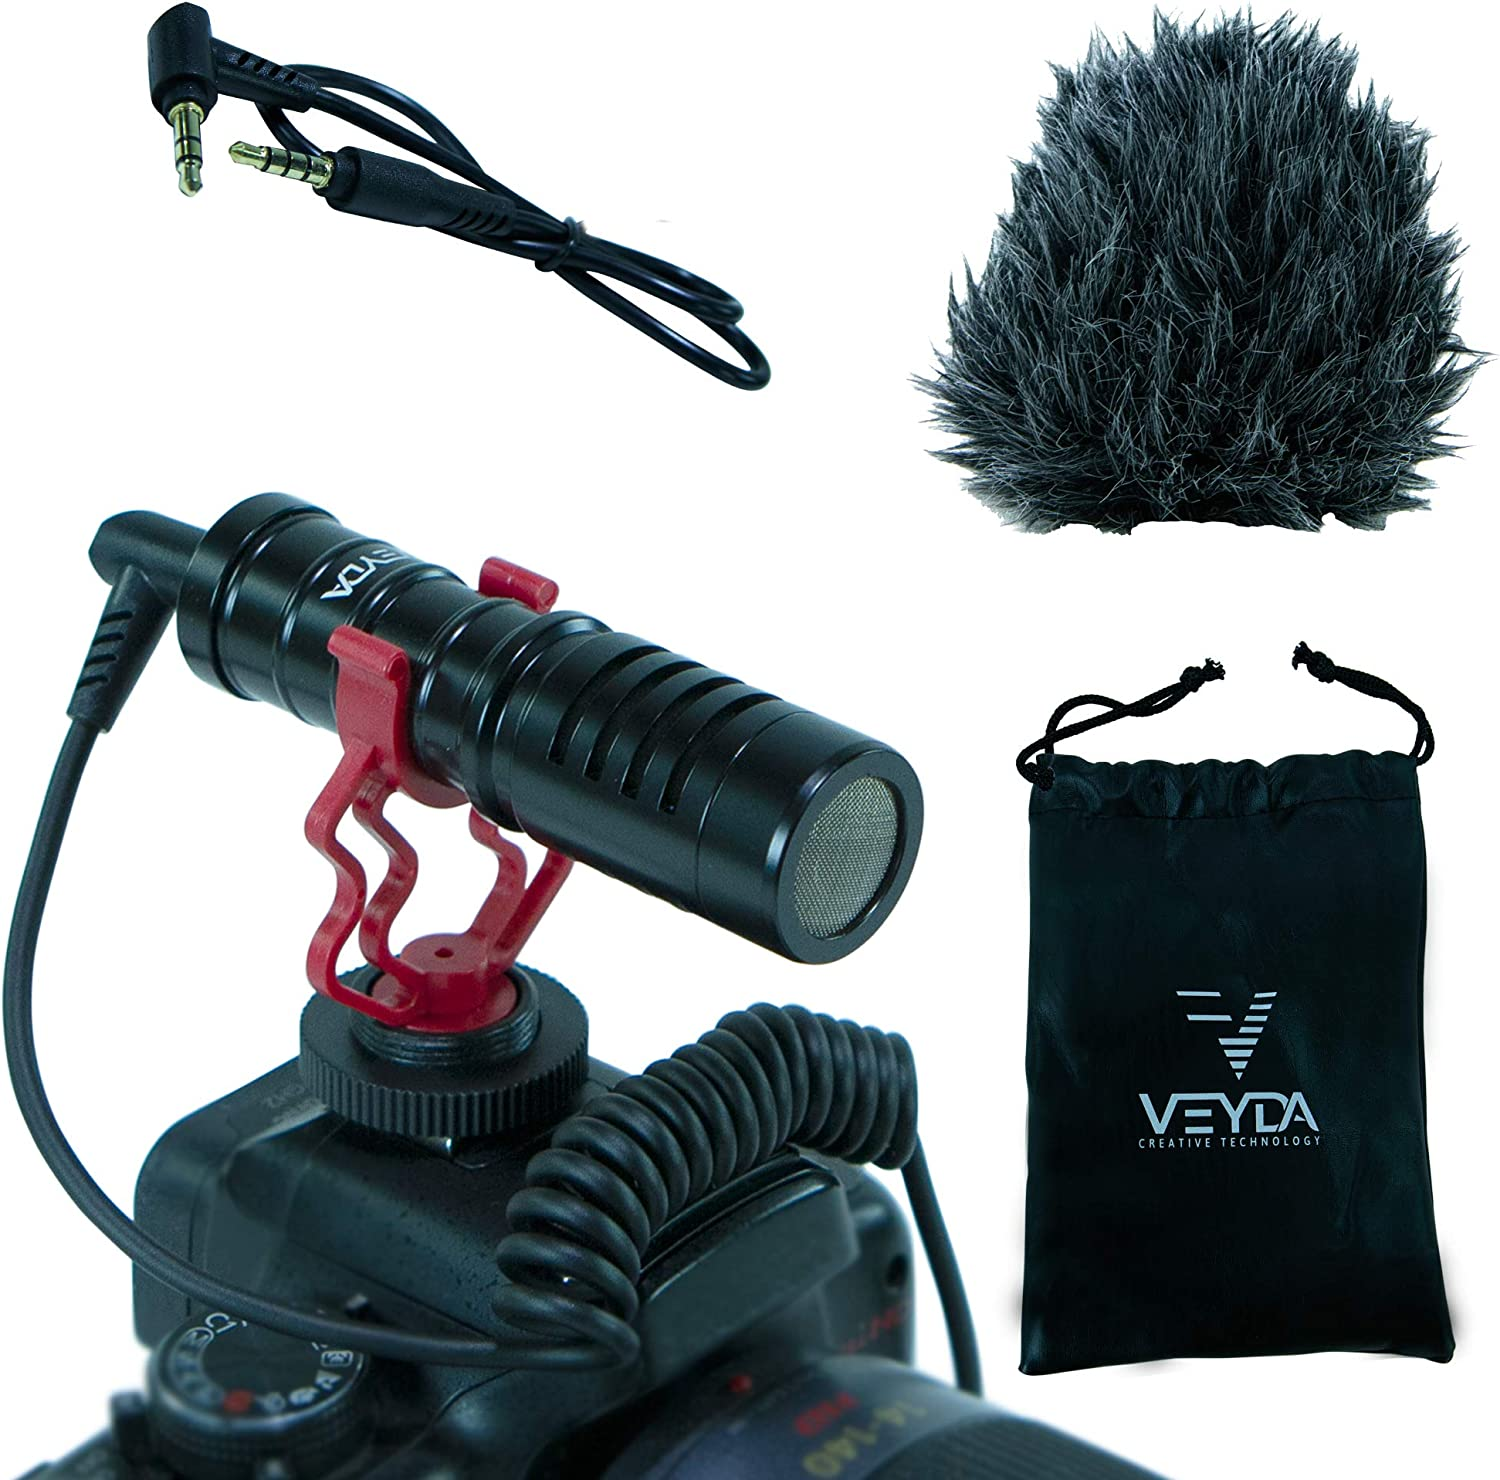 VEYDA VD-SG1 Universal Video Shotgun Microphone with Shock-Absorbing Mount, Deluxe Deadcat Windscreen and 3.5mm TRS/TRRS Patch Cables - Perfect for Vlogging and Influencing